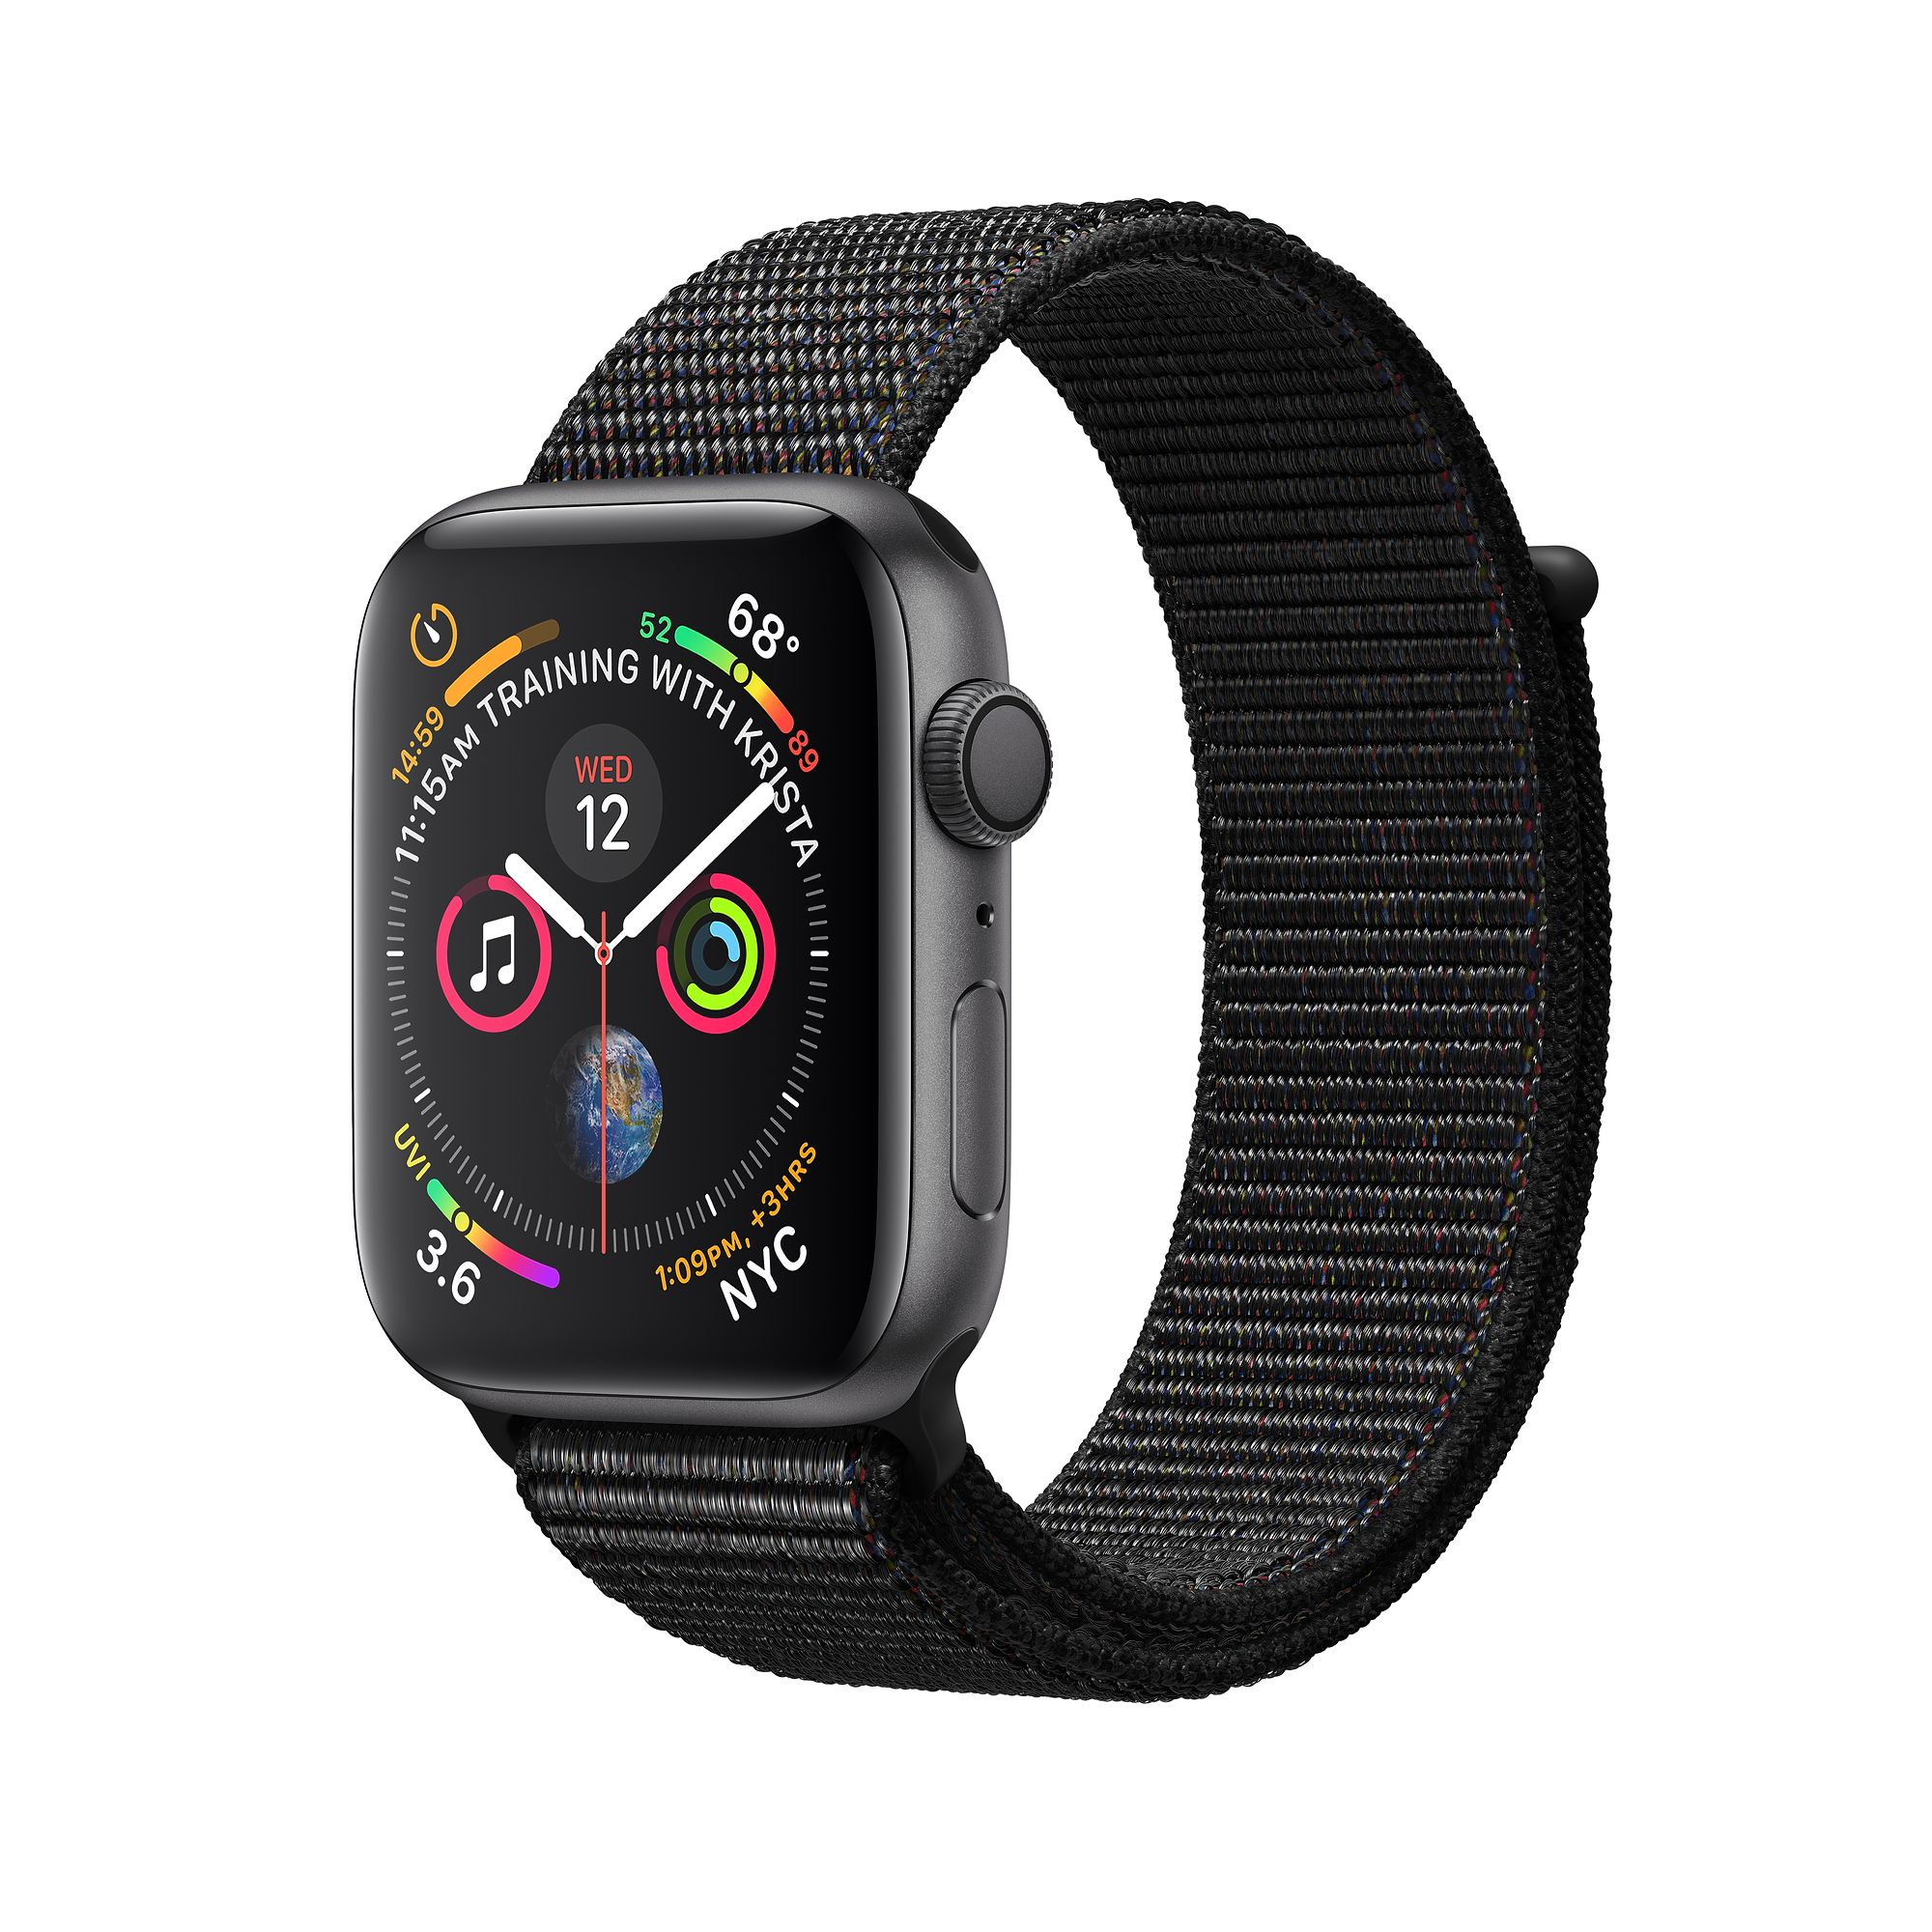 Apple Watch Series 4, 40mm Space Grey Aluminum Case with Black Sport Loop  - умен часовник от Apple